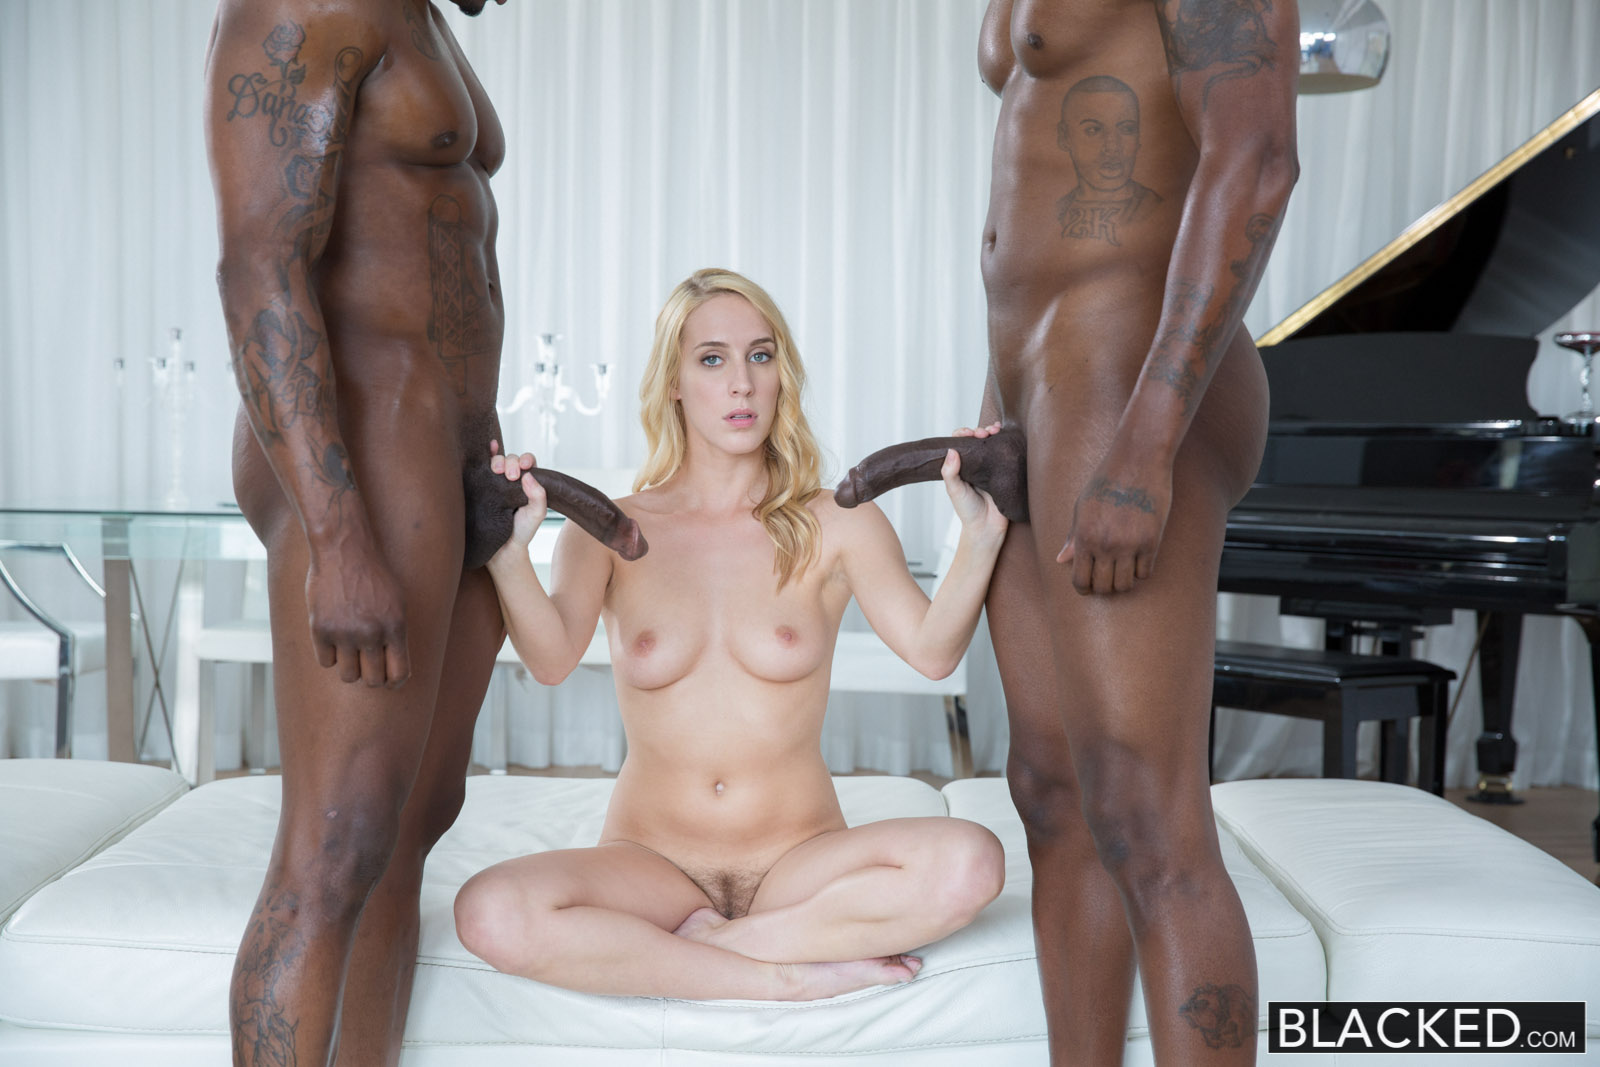 black-girl-interracial-traney-sex